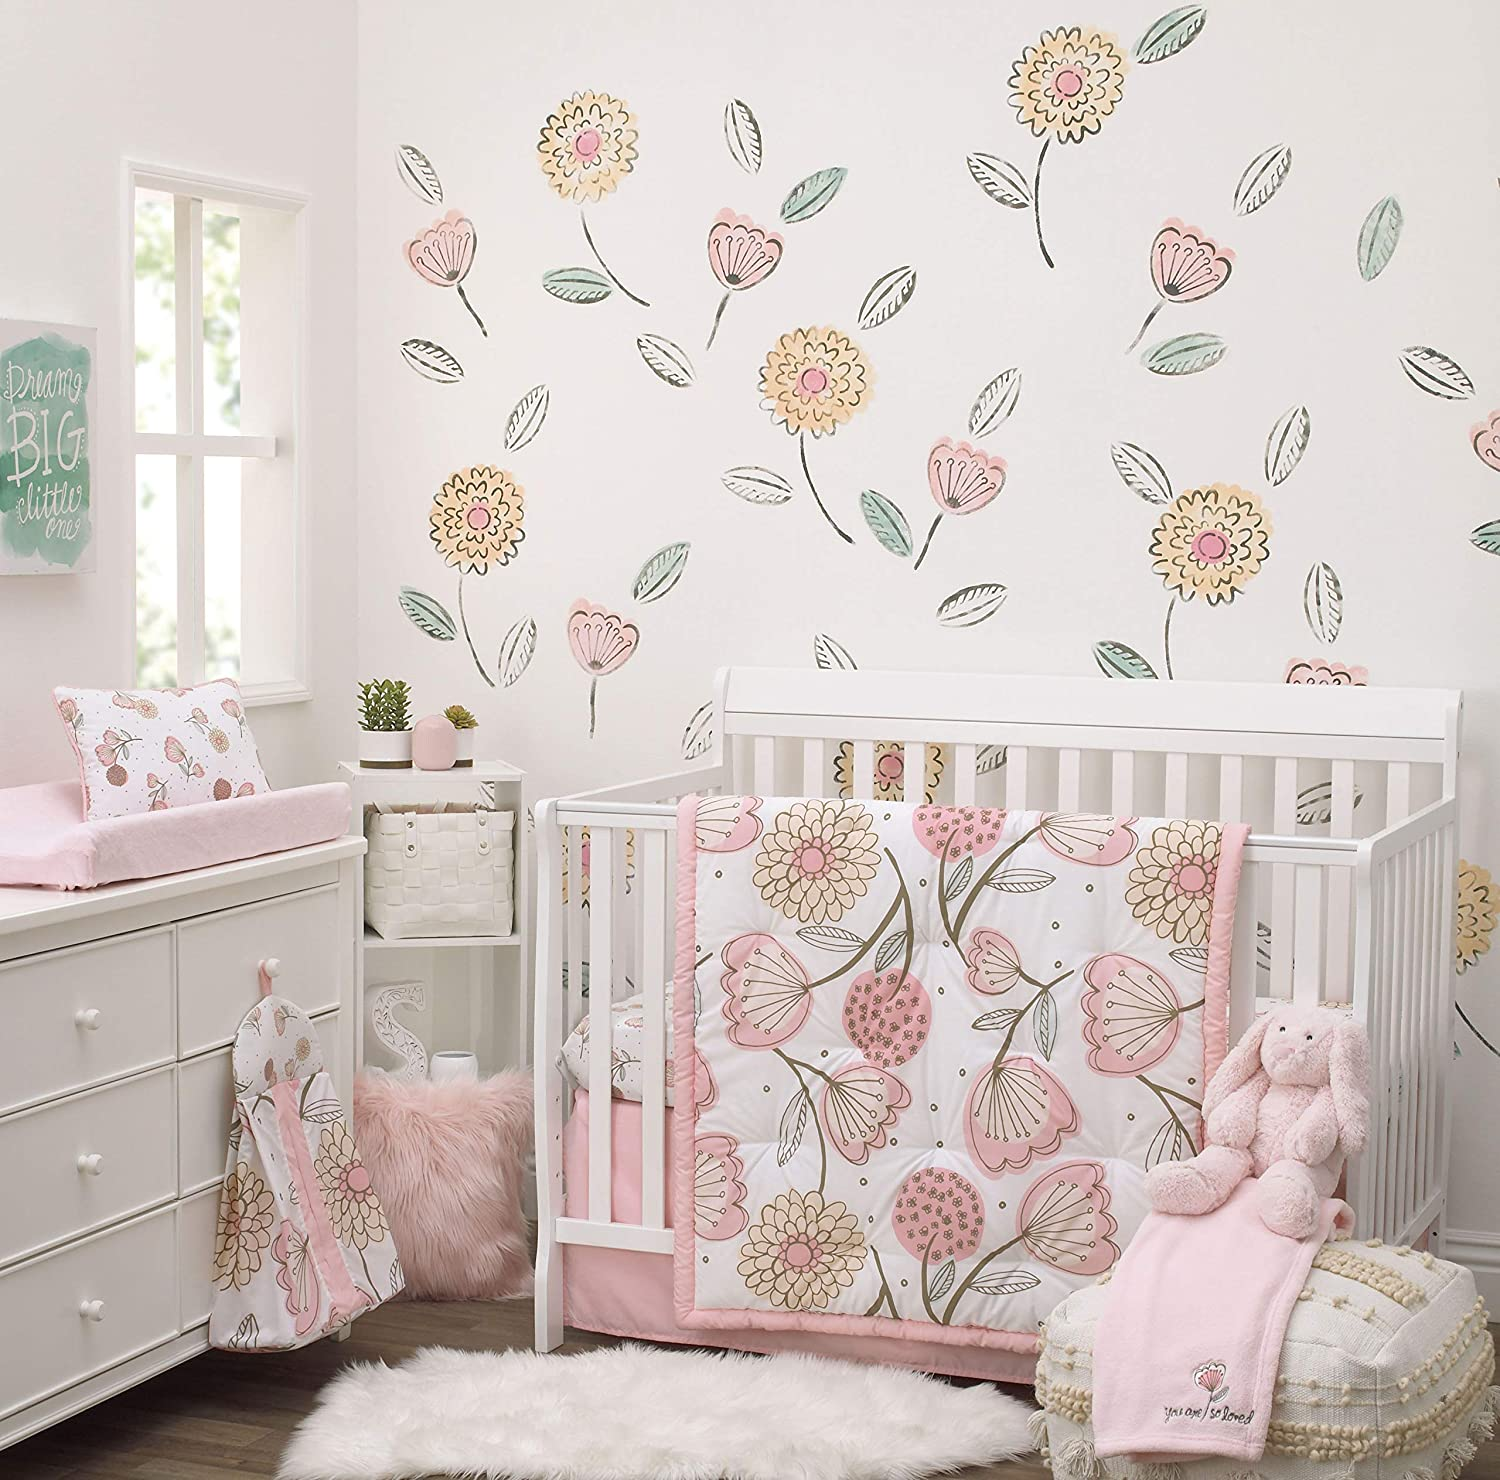 NoJo Beautiful Floral - Pink, Grey, White 10 Piece Crib Nursery Bedding Set - Comforter, 2 Fitted Crib Sheets (2 Prints), Dust Ruffle, Decorative Pillow, Diaper Stacker, Baby Blanket, Changing Pad Co